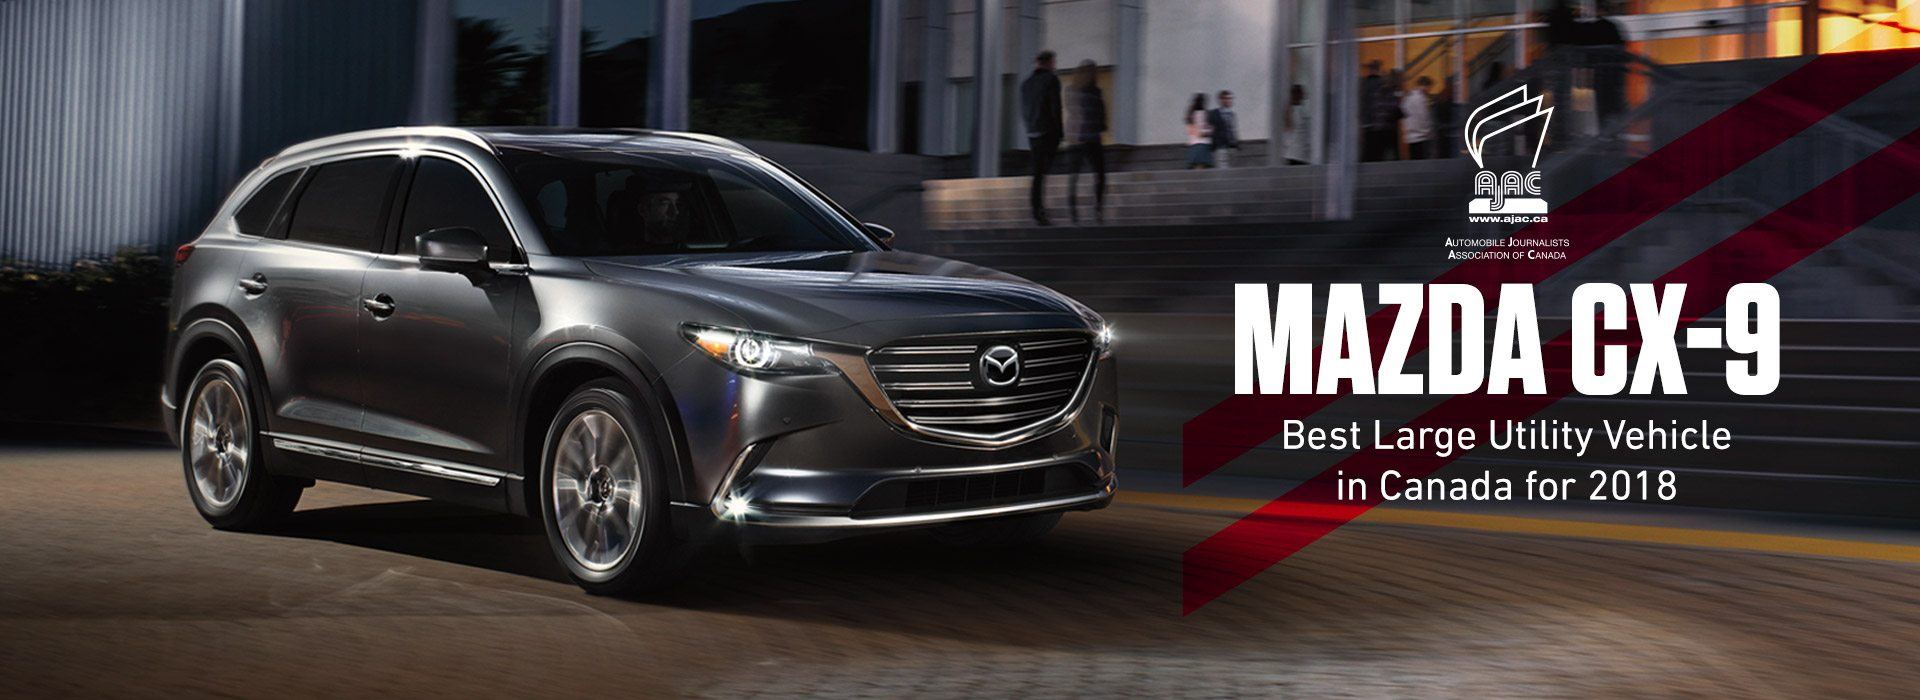 cantebury mazda christchurch official service nearest cars blackwells dealer car and used dealership for gsx parts new manual demo sale